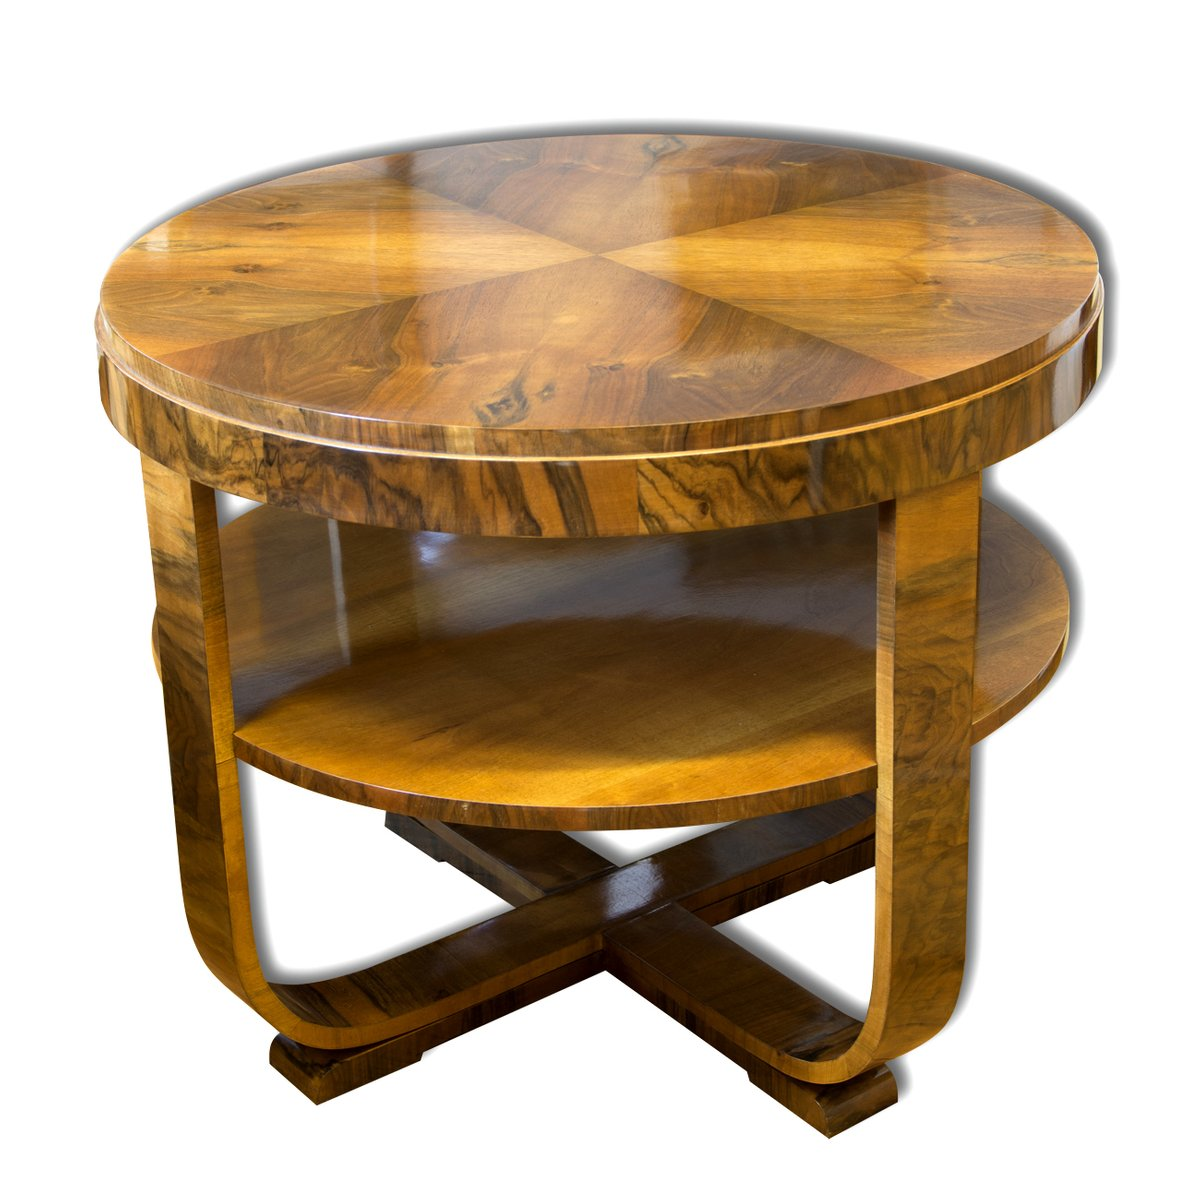 Czech Walnut Veneer Coffee Table By Jindrich Halabala 1930s For Sale At Pamono